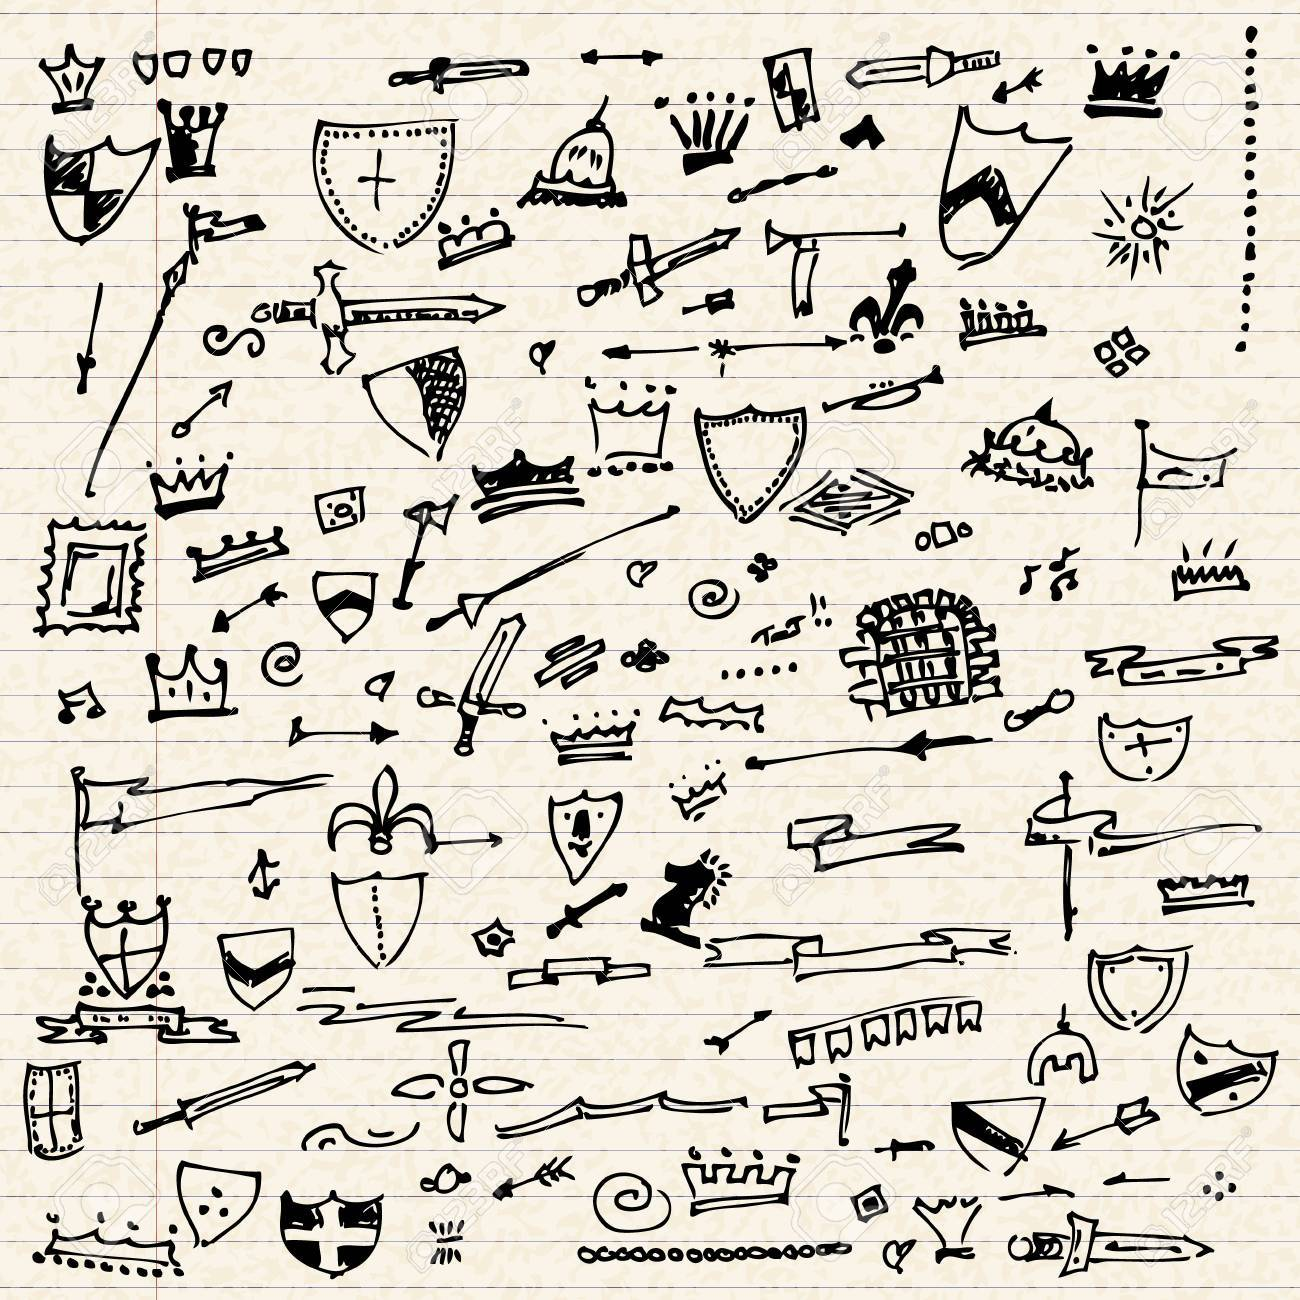 Illustration Of Doodles On A Sheet Of Lined Paper Royalty Free Cliparts Vectors And Stock Illustration Image 38772656